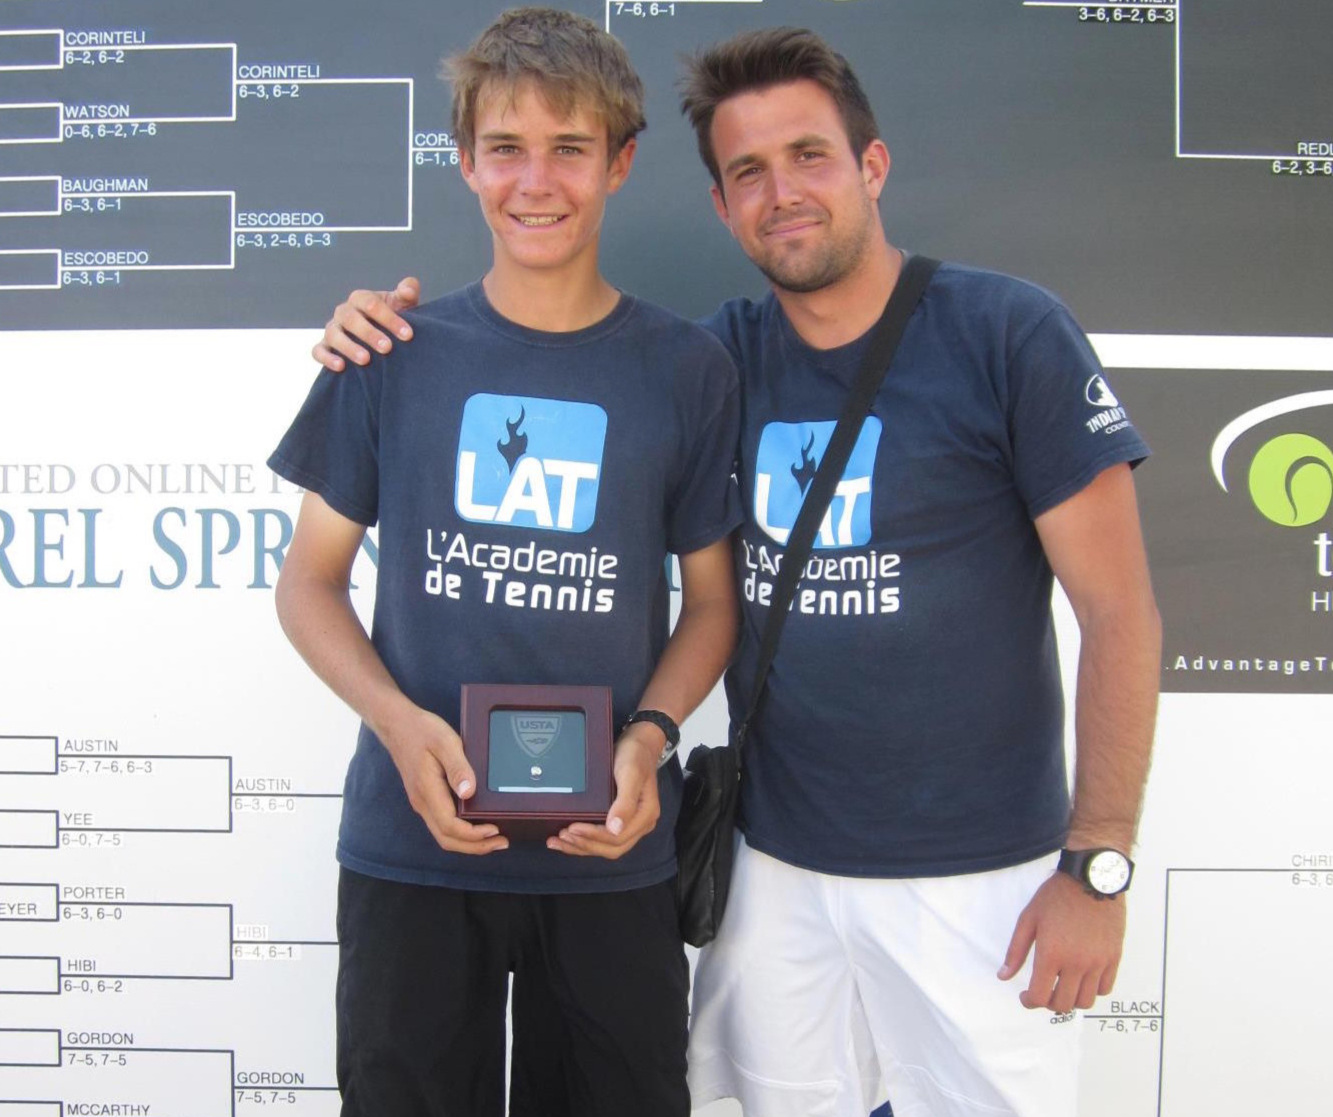 Harvard university - Jean Thirouin (Houston, Texas)Blue-Chip Recruit - #9 on TennisRecruiting#272 ITF World Junior RankingCoca-Cola ITF Tournament - Singles Champion